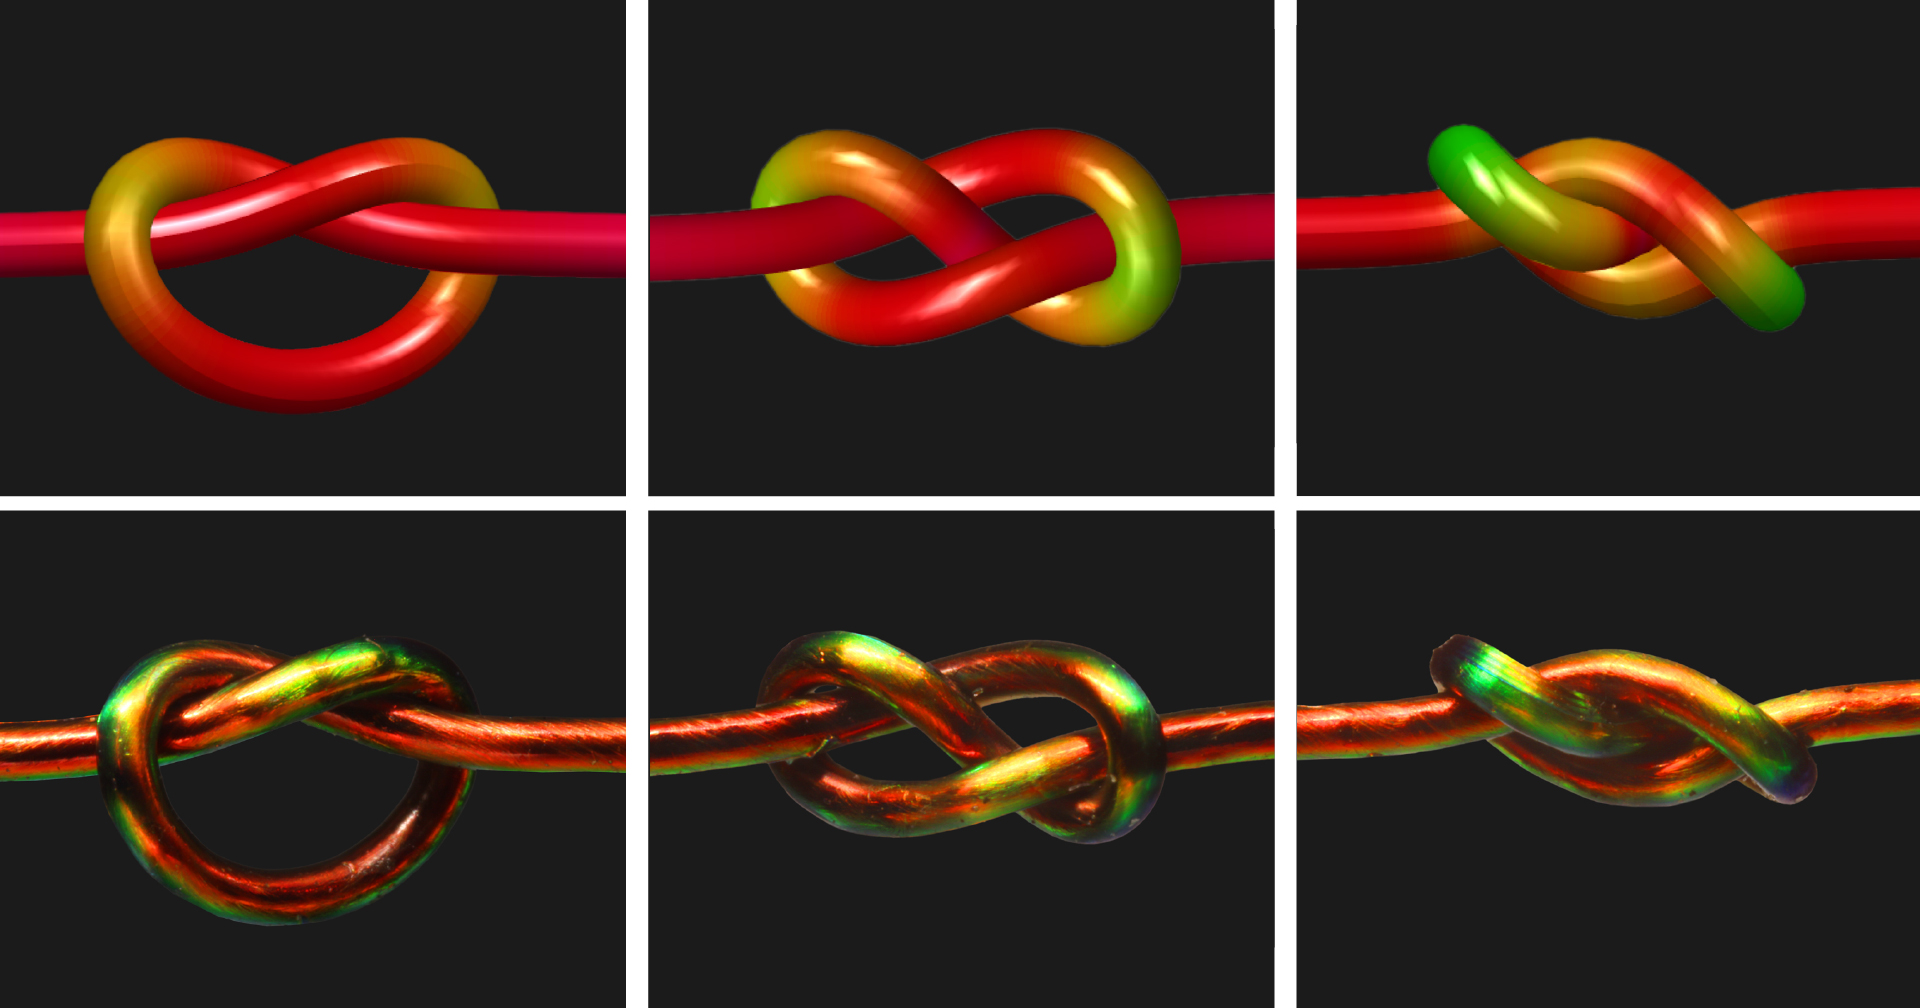 Color-Changing Material Unites the Math and Physics of Knots | Quanta Magazine